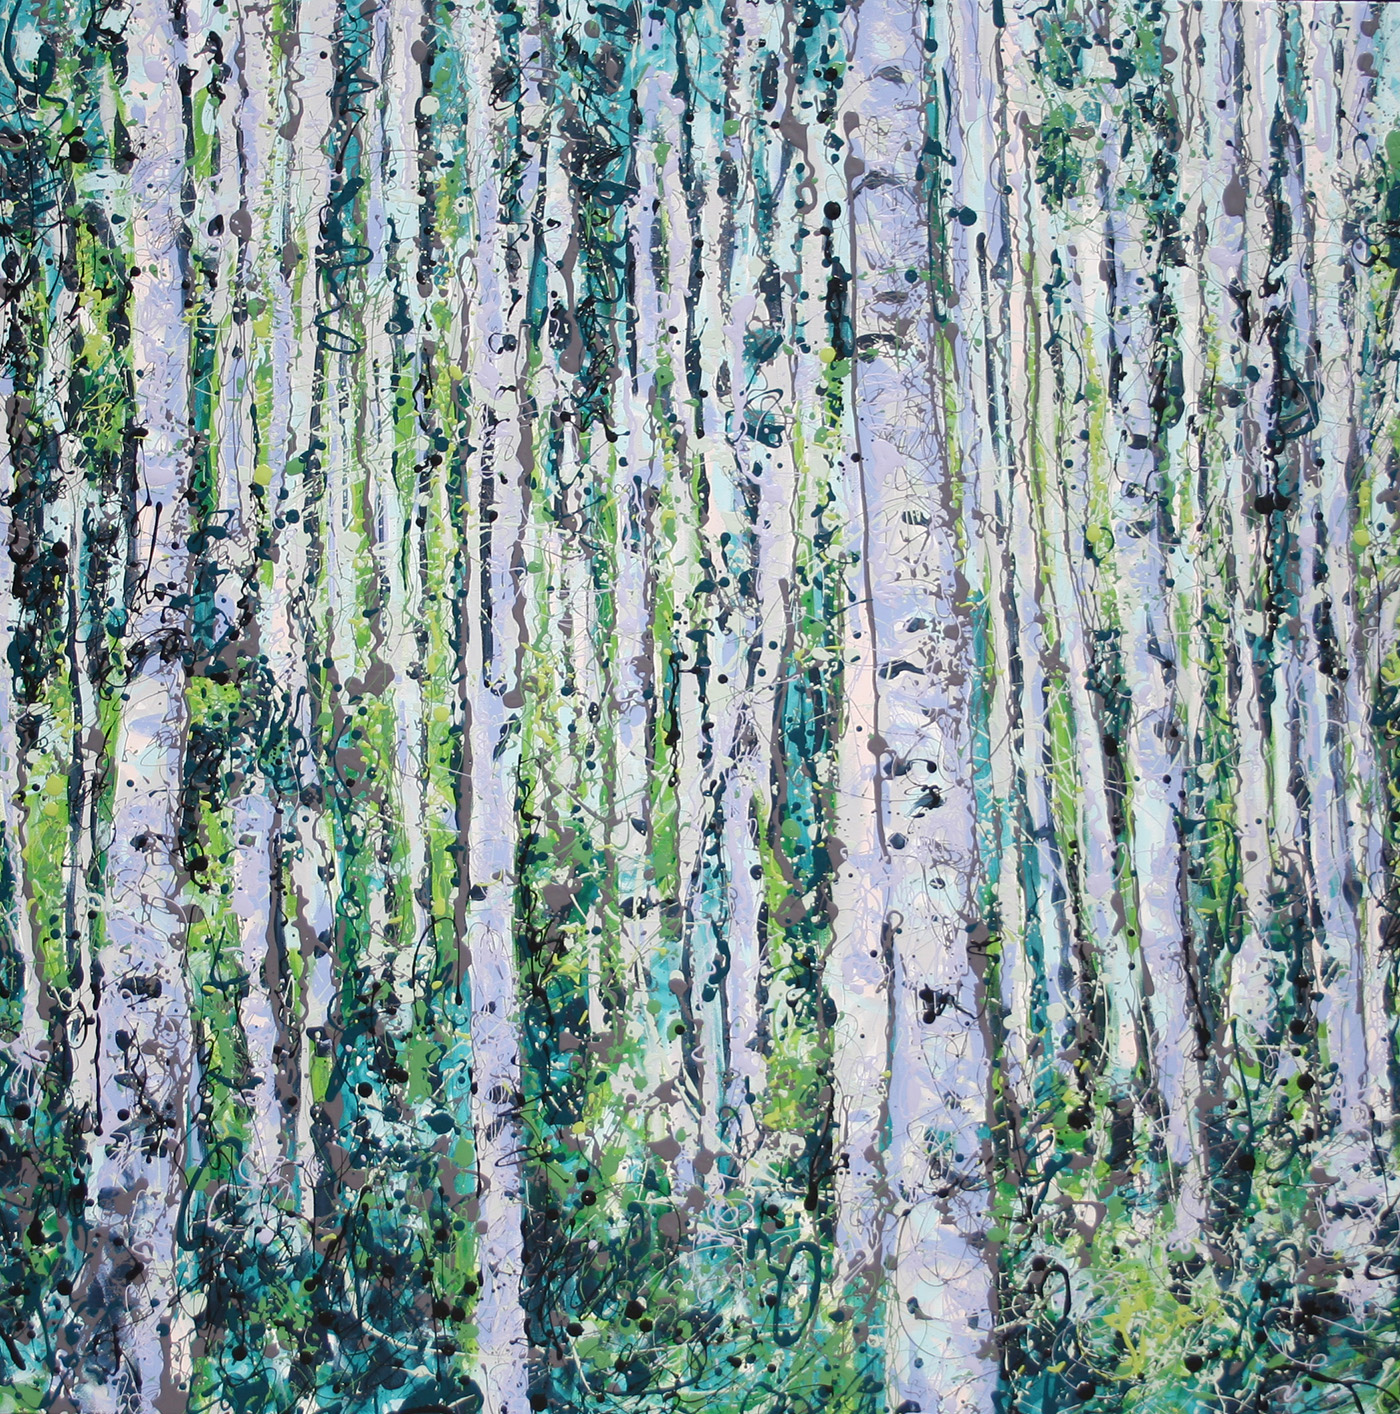 Representational imagery of aspen grove found in southern Colorado. Latex Enamel Painting on Gallery Wrapped Canvas by Fort Collins, Colorado Artist  Lisa Cameron Russell